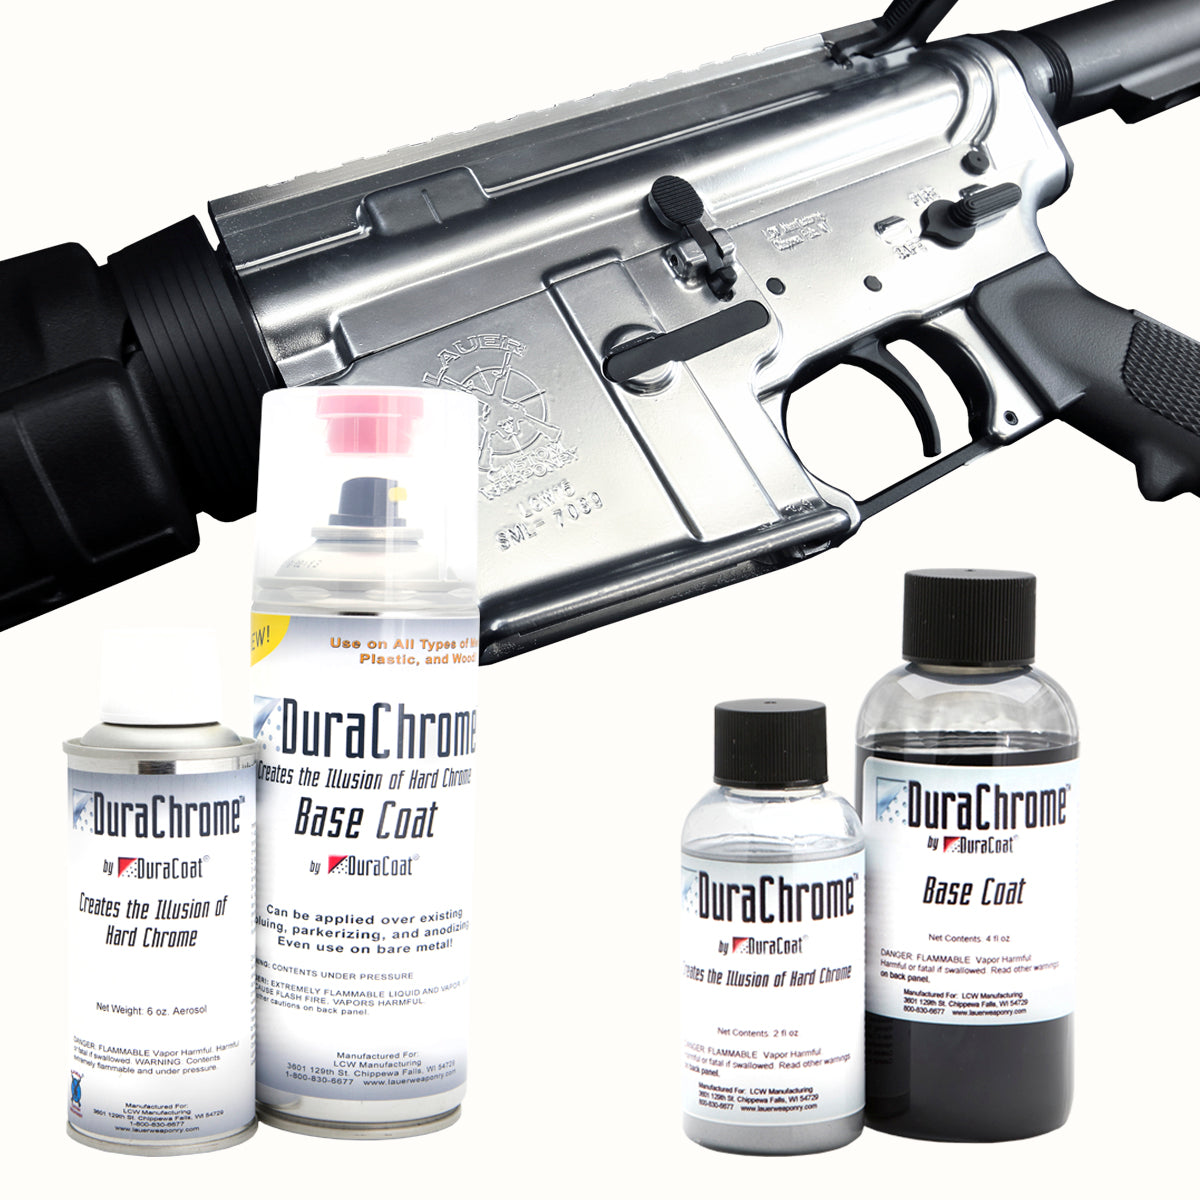 DuraChrome™ – DuraCoat® Firearm Finishes by Lauer Custom Weaponry